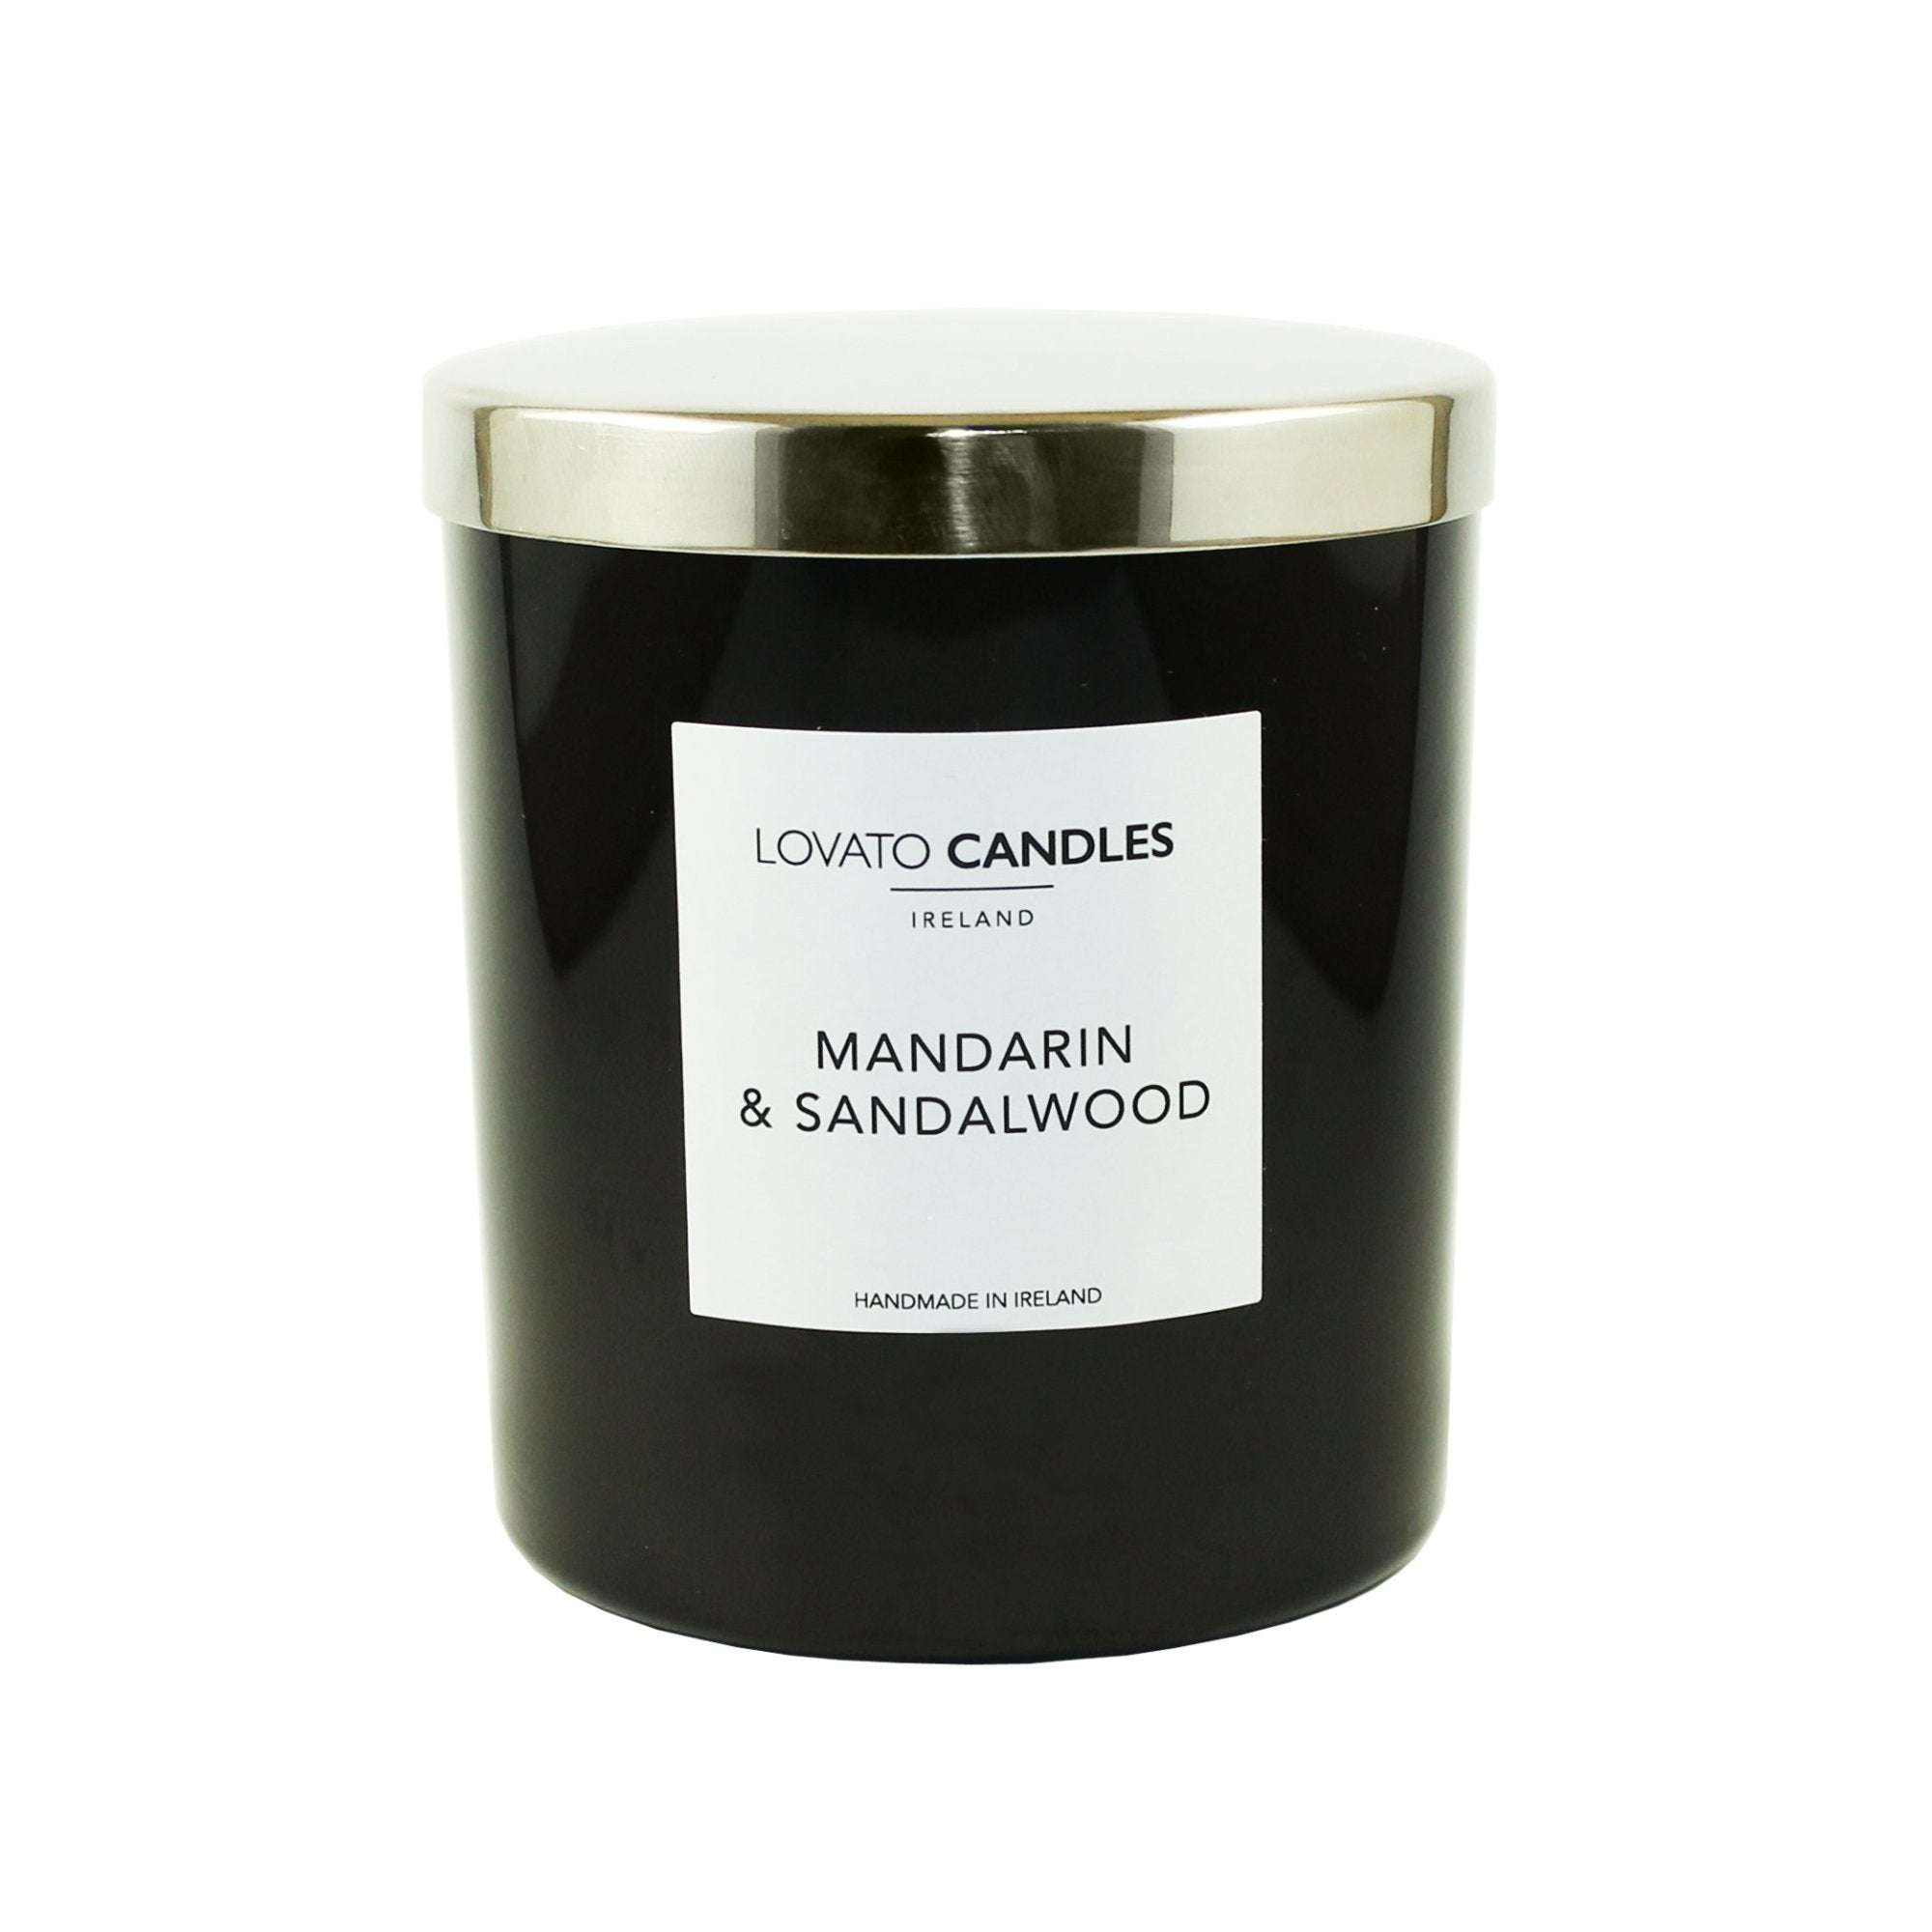 Luxury Black Candle - Mandarin & Sandalwood - Lovato Candles